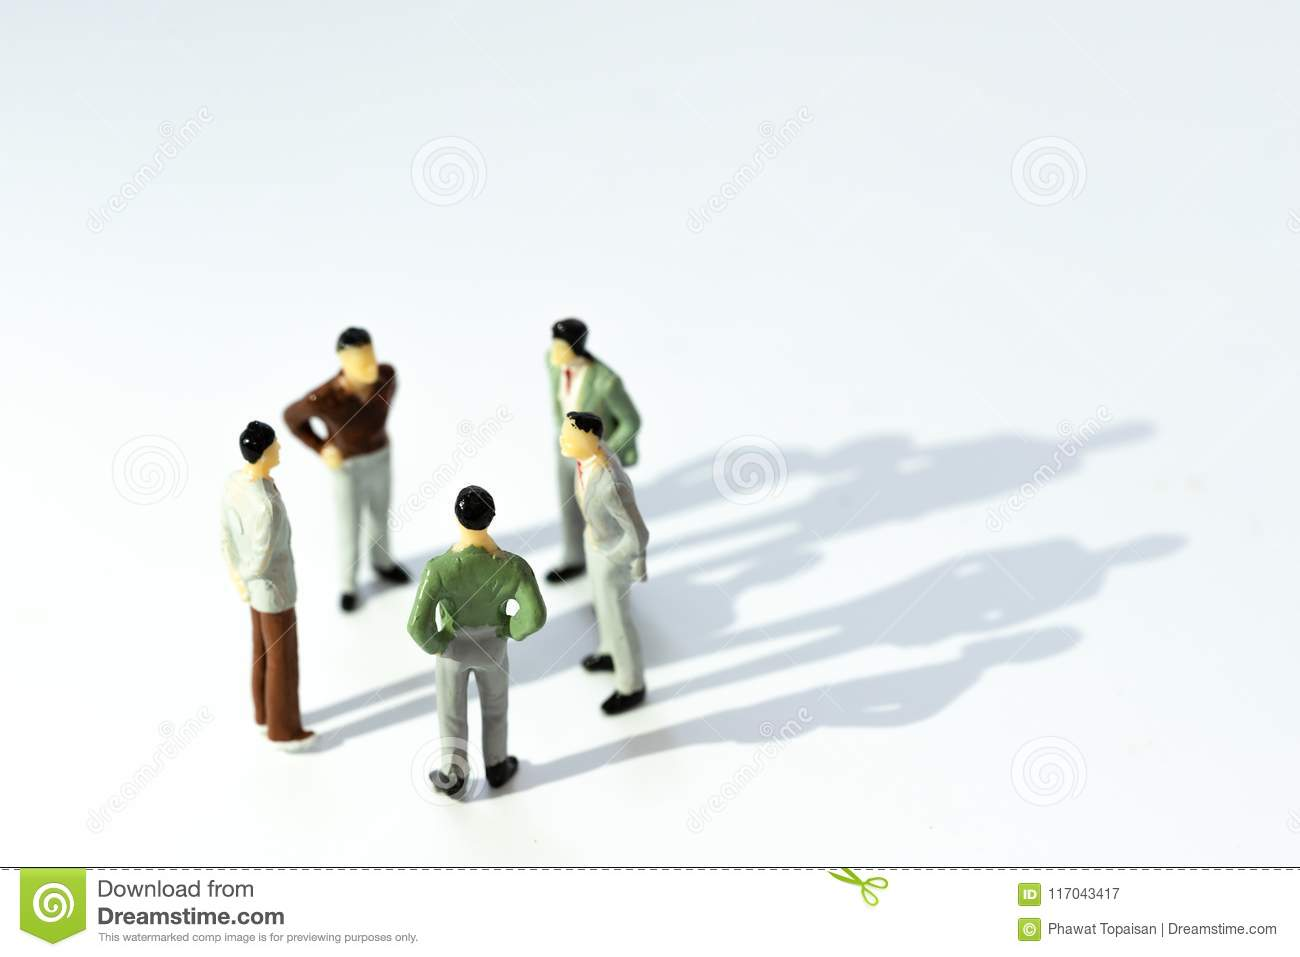 Business Leadership Teamwork Power And Confidence Concept Miniature People Businessman Small Figure Stock Image Image Of Organization Concept 117043417